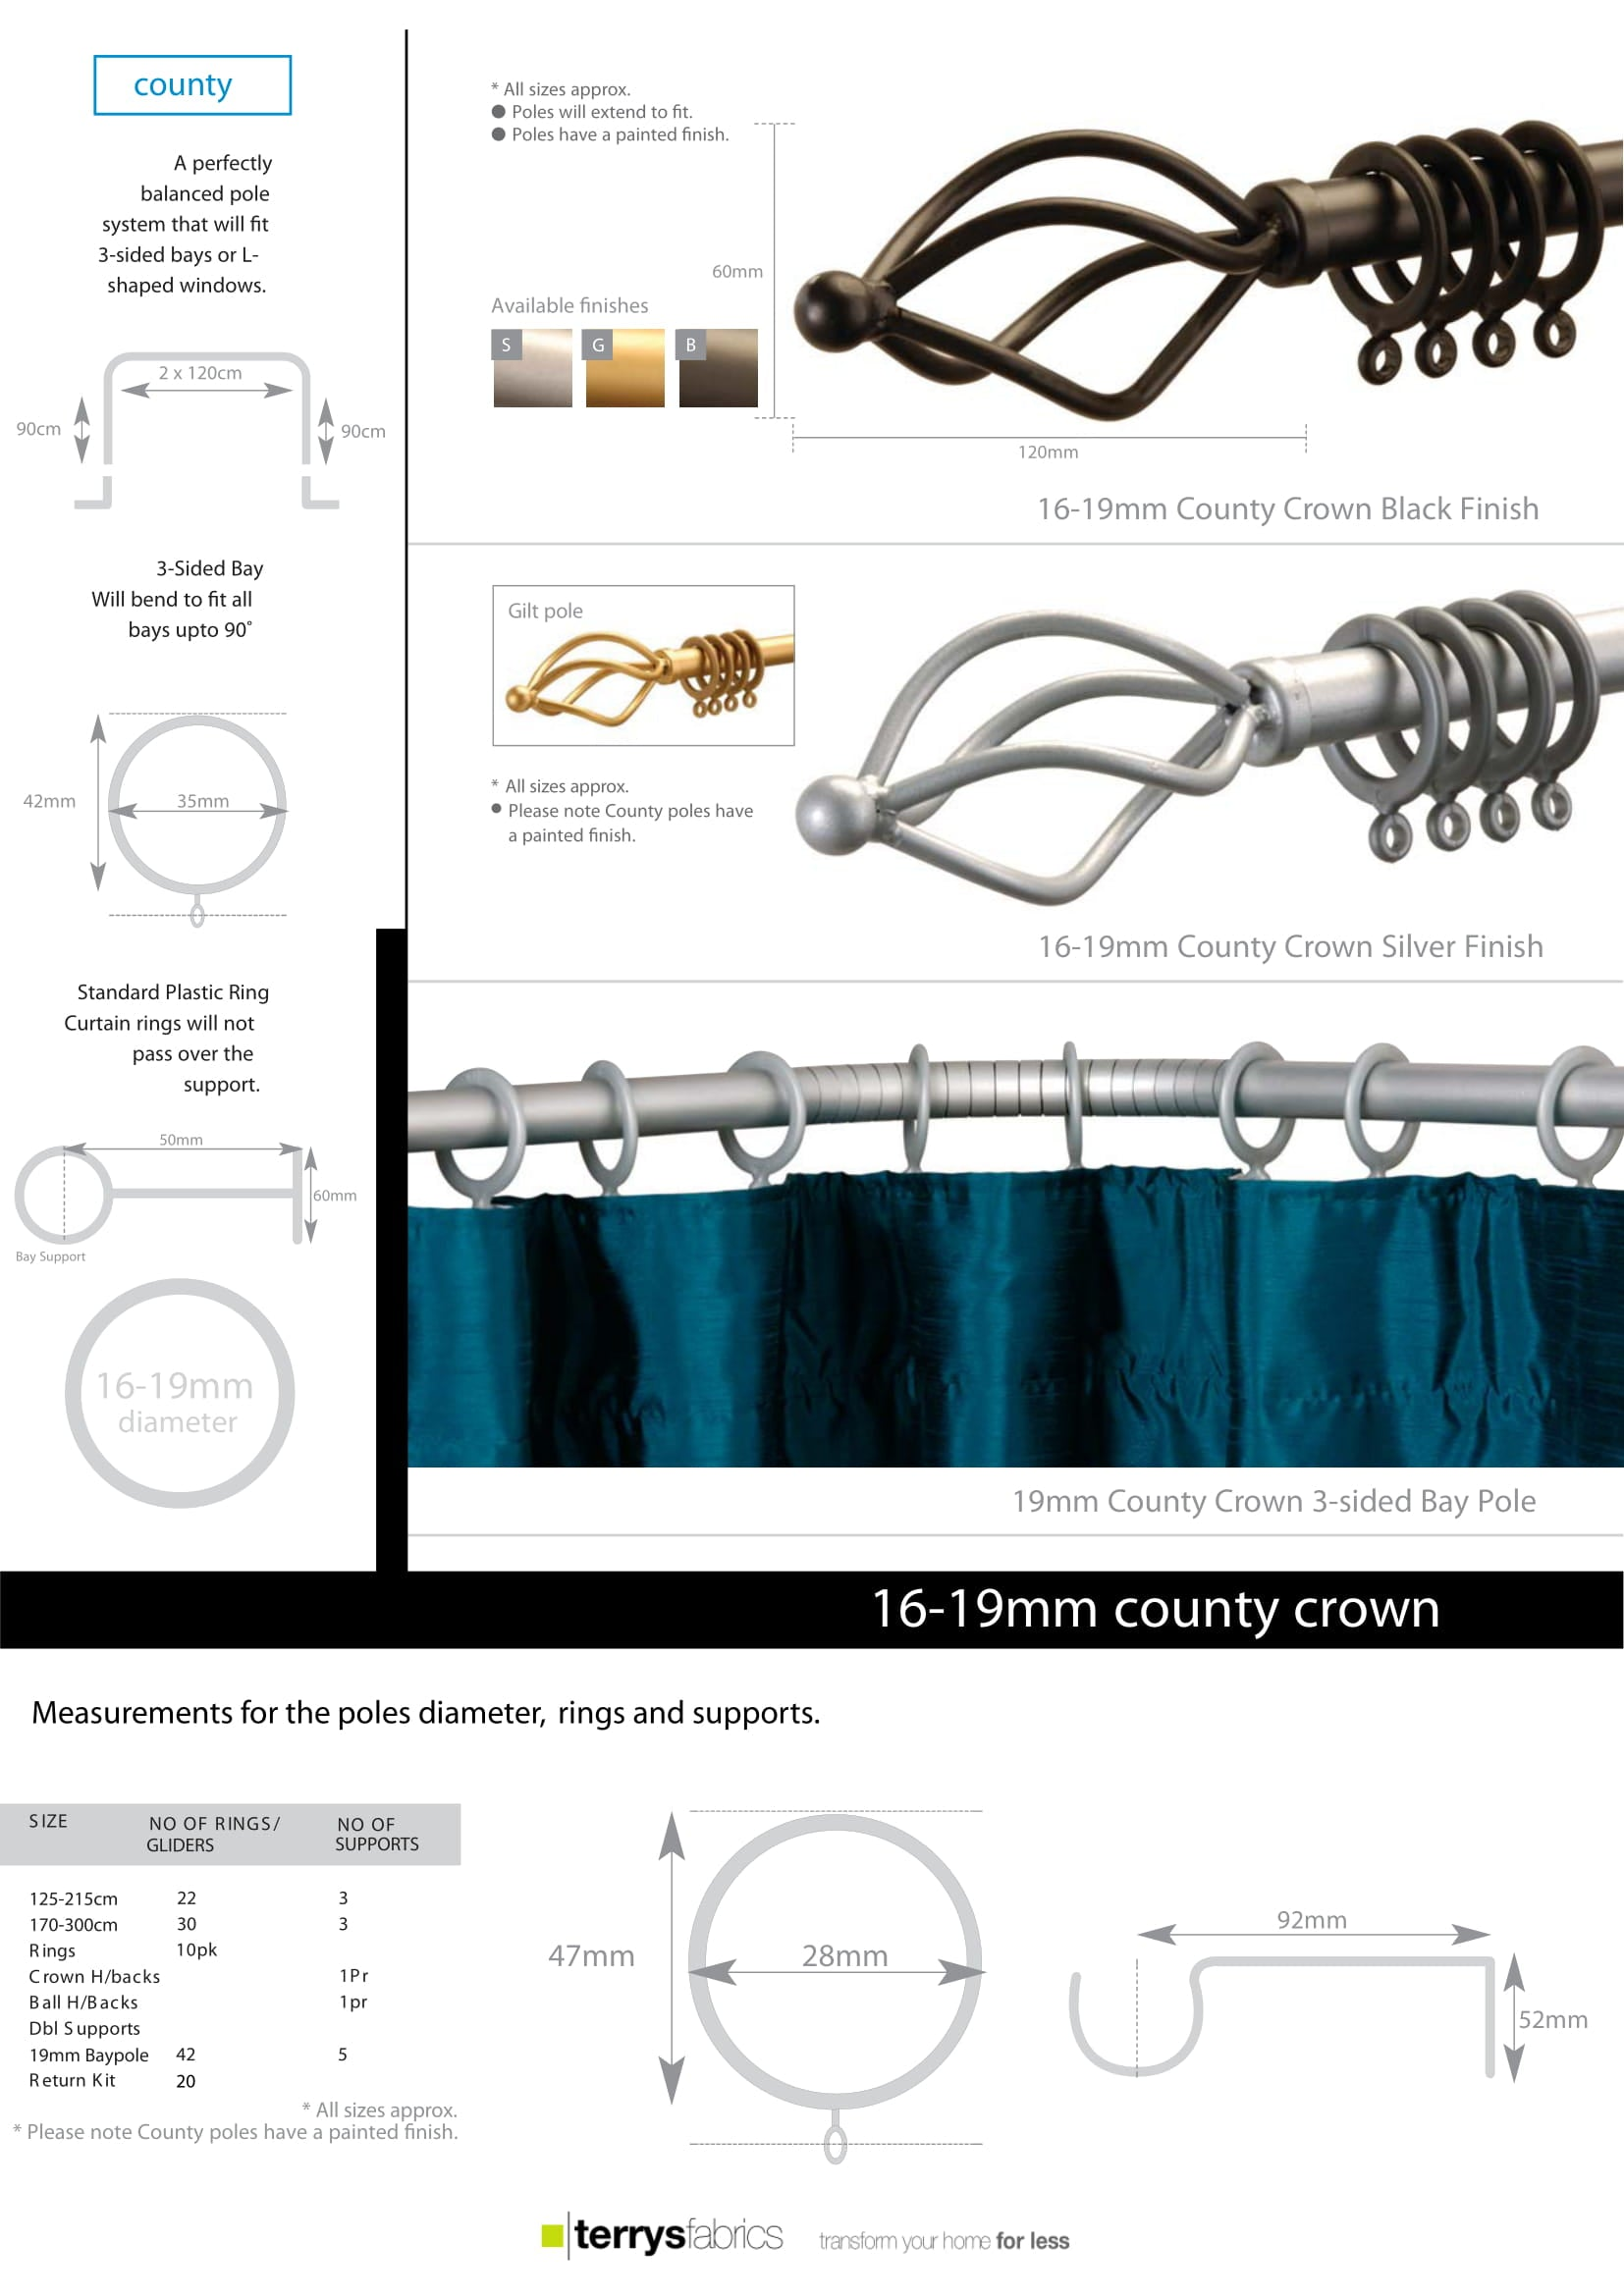 County Metal Poles Product Details And Fitting Instructions Two